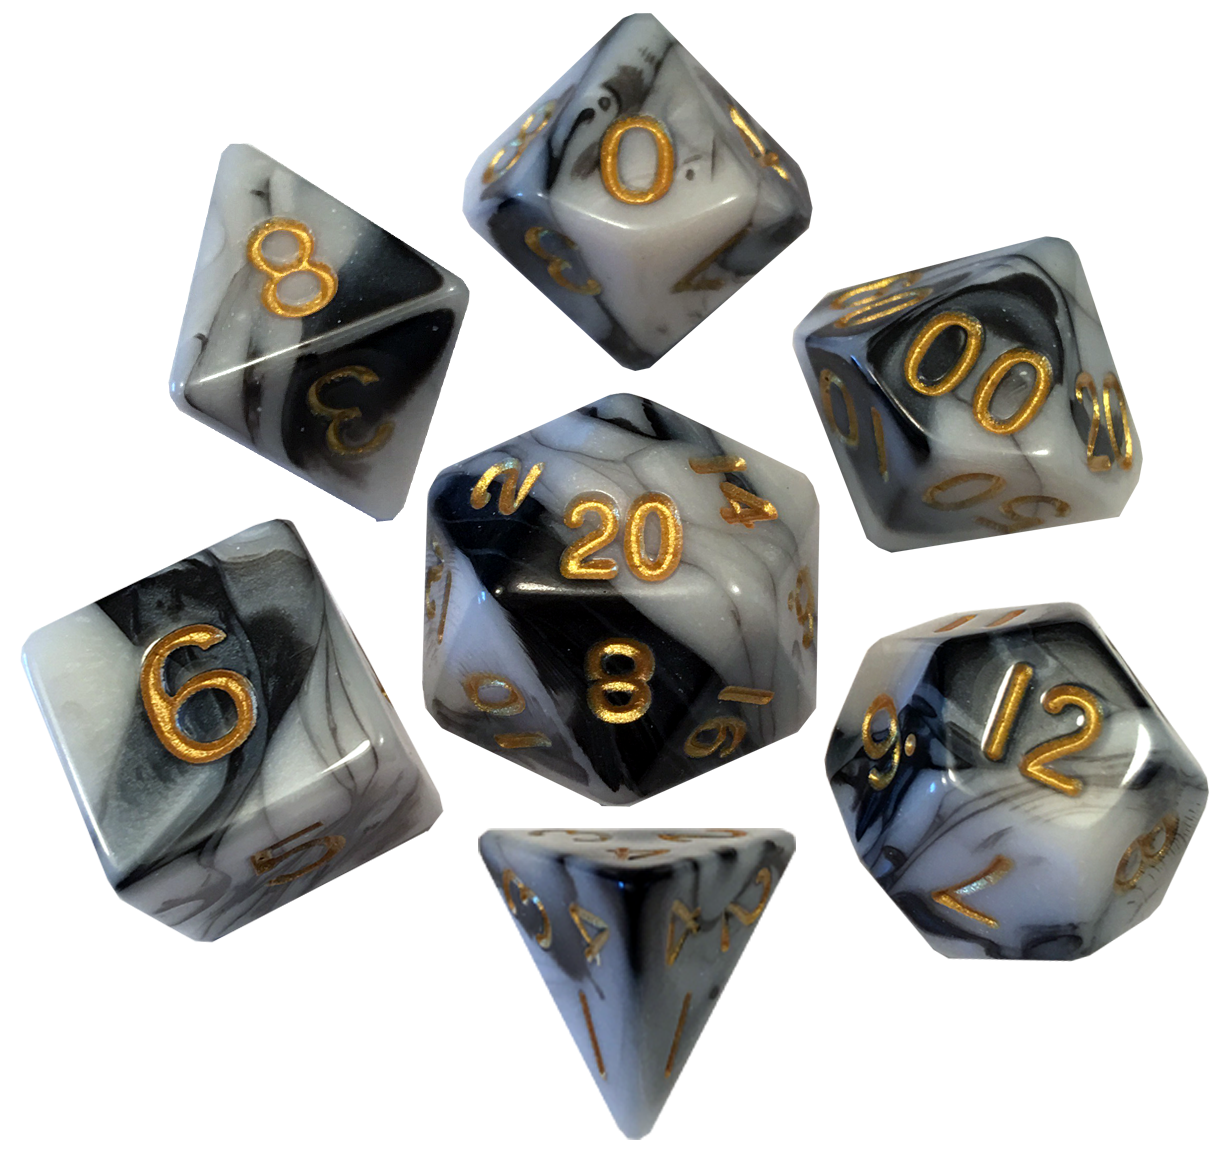 16mm Acrylic Poly Dice Set - Marble with Gold Numbers